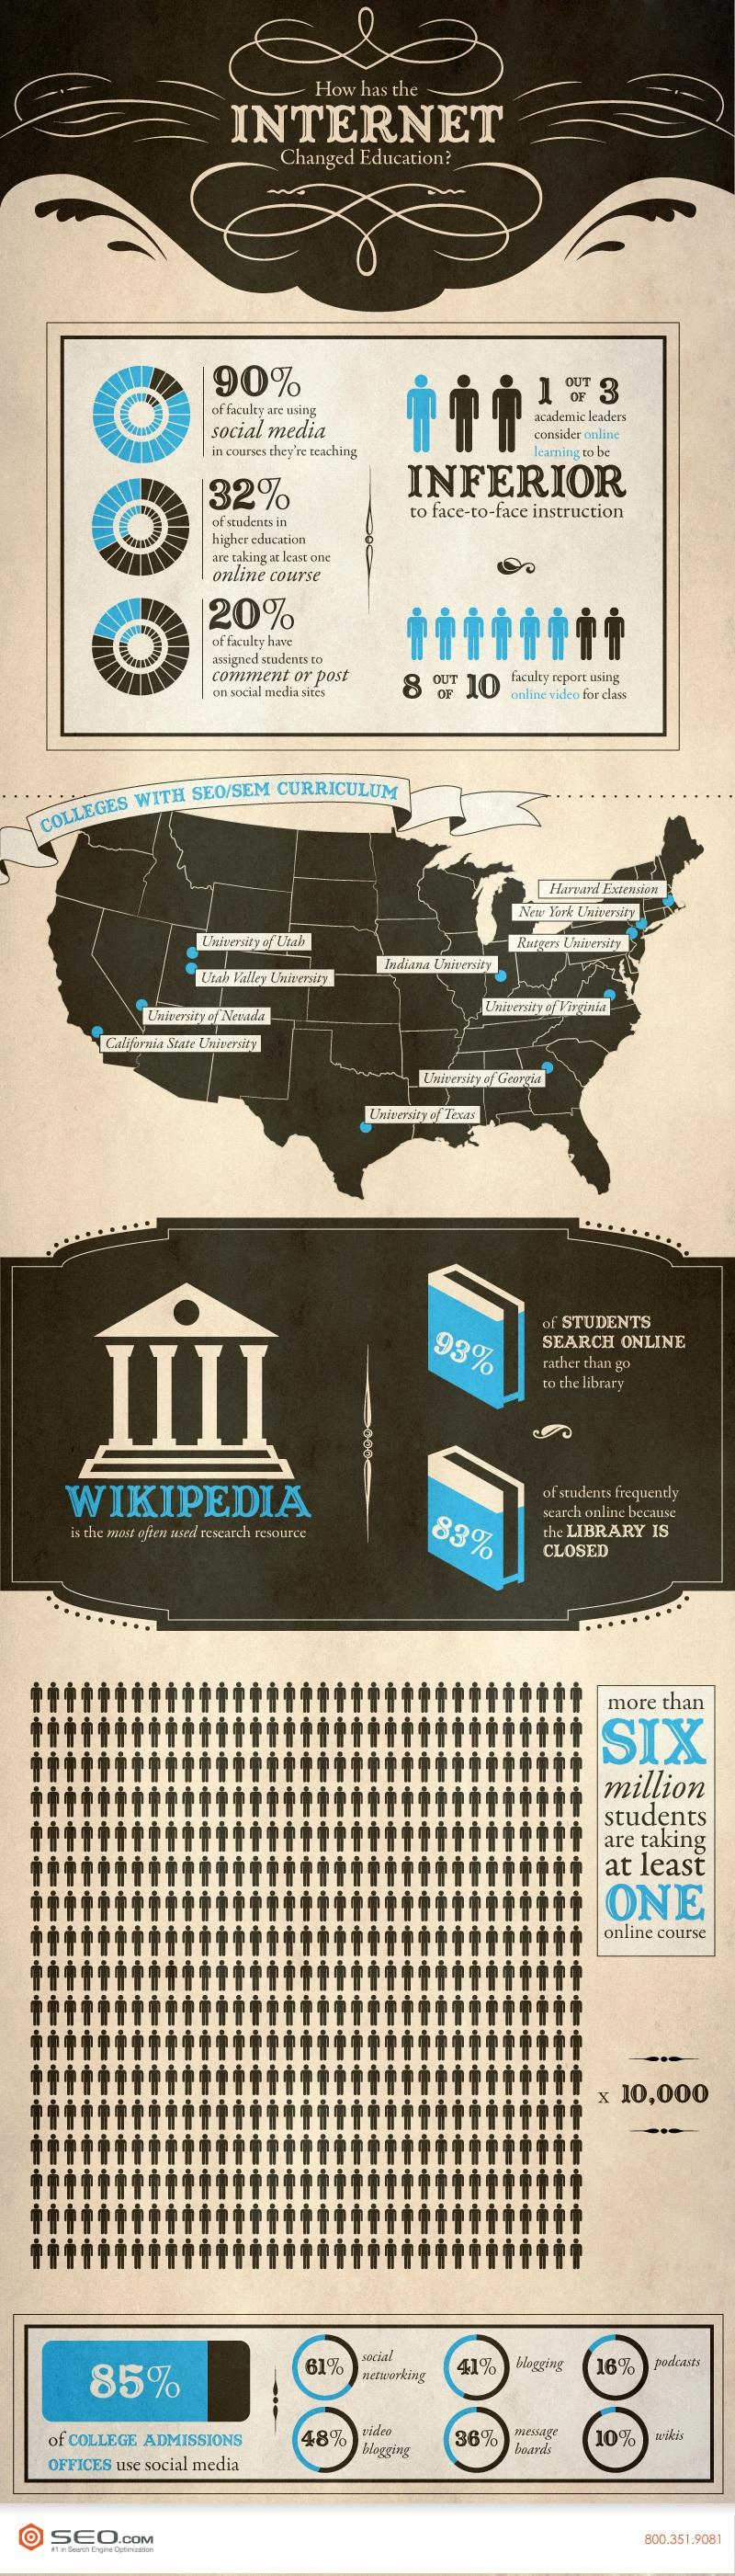 how has internet impacted education infographic